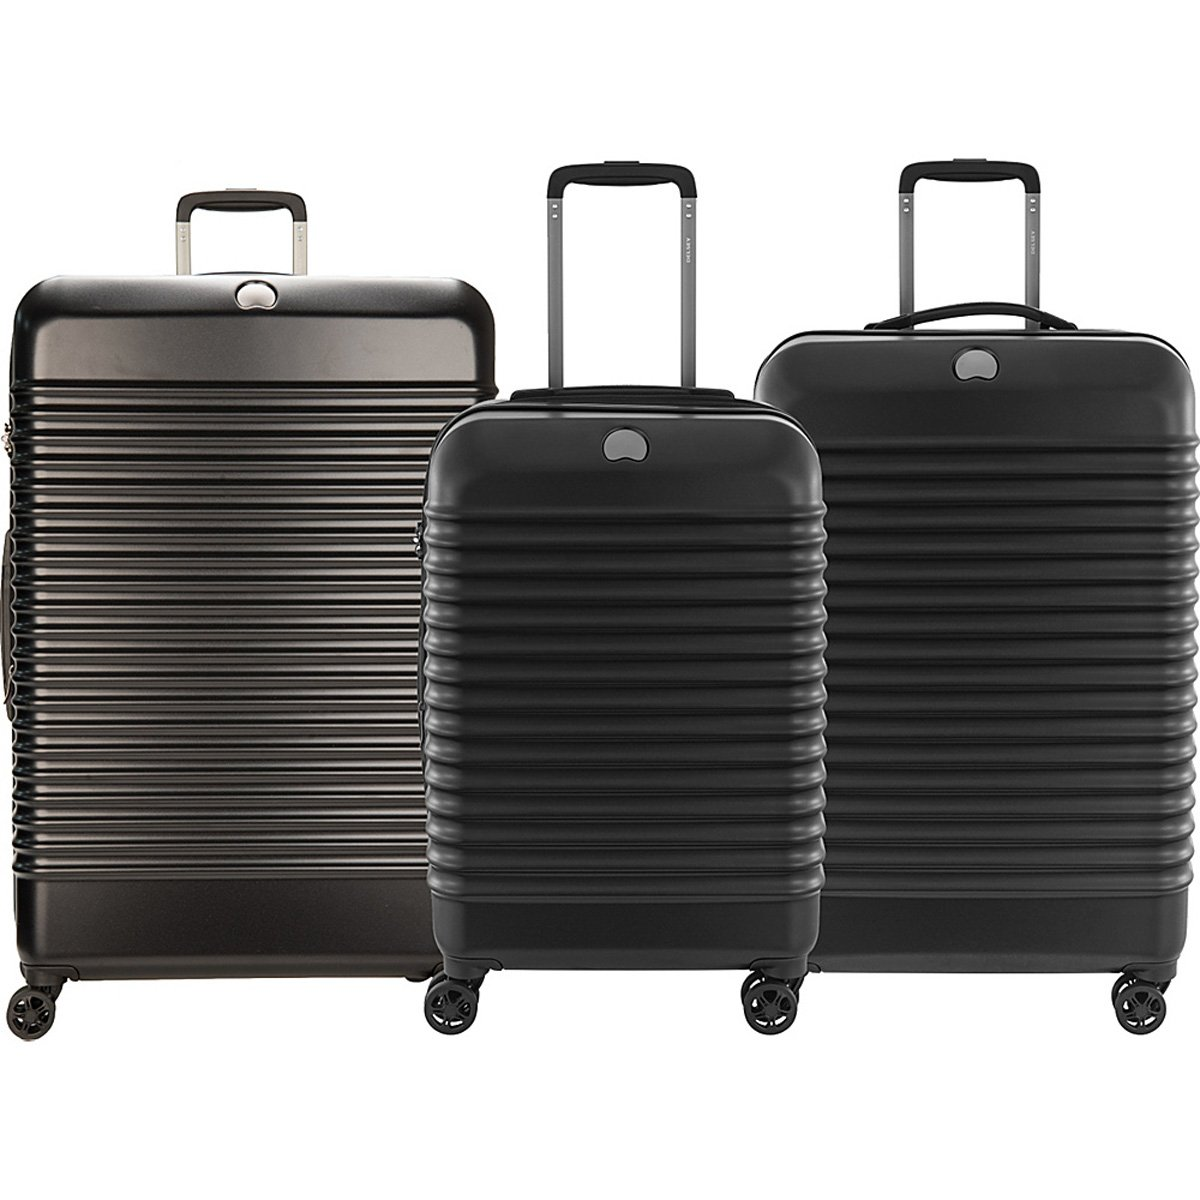 The Set of Classic black Bastille Lite Expandable 4 Wheel Spinner Luggage Set